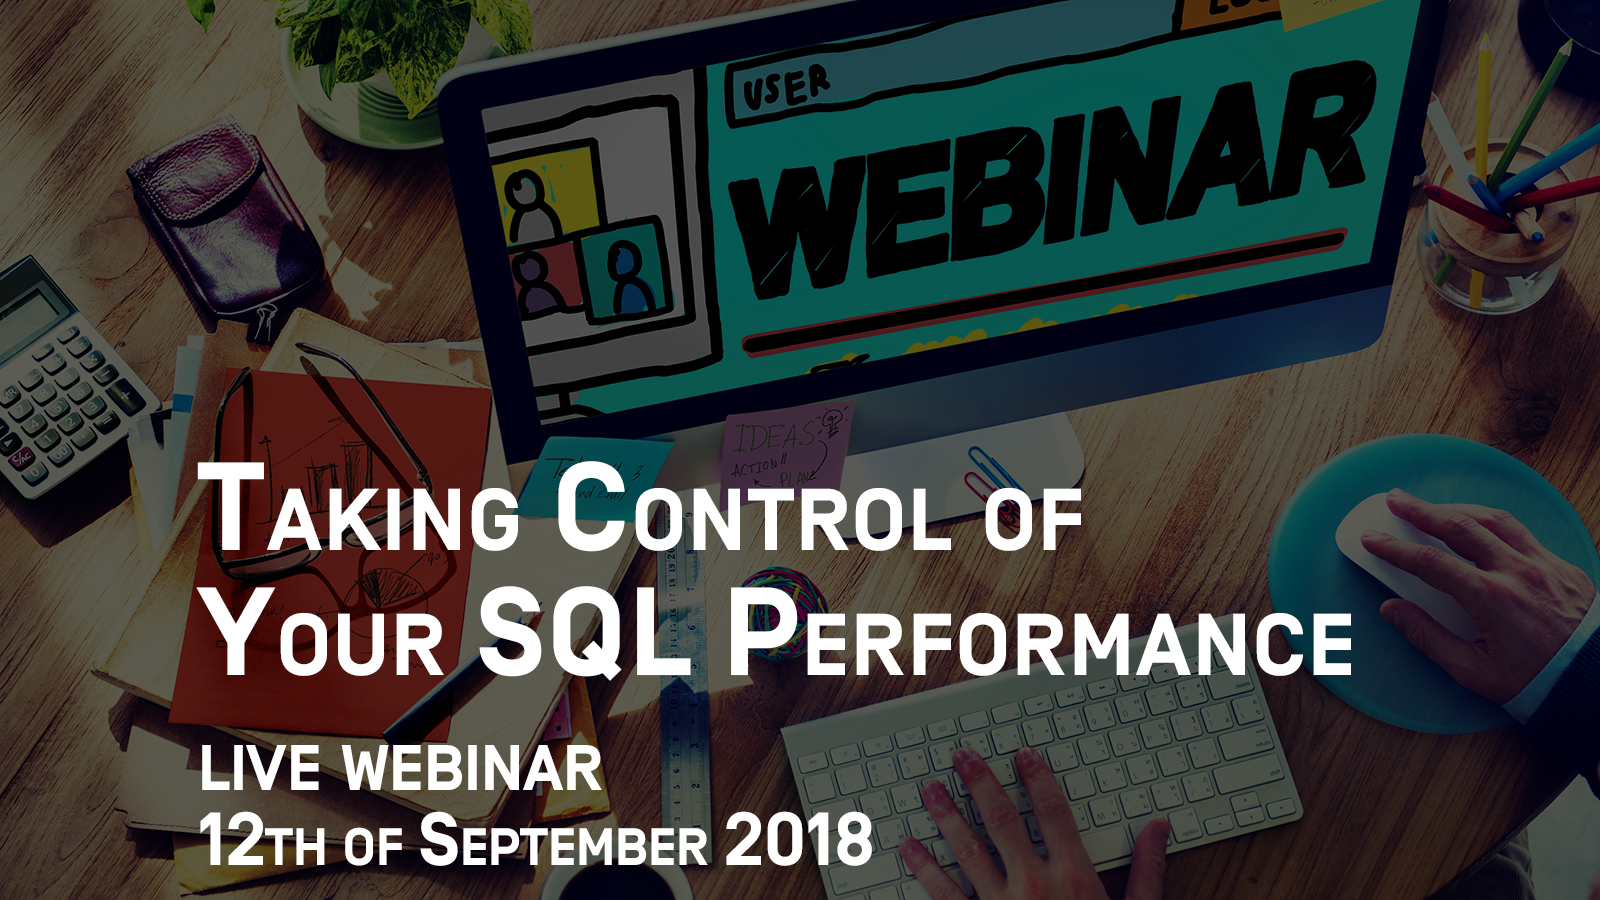 Webinar September 12) Taking Control of Your SQL Performance |